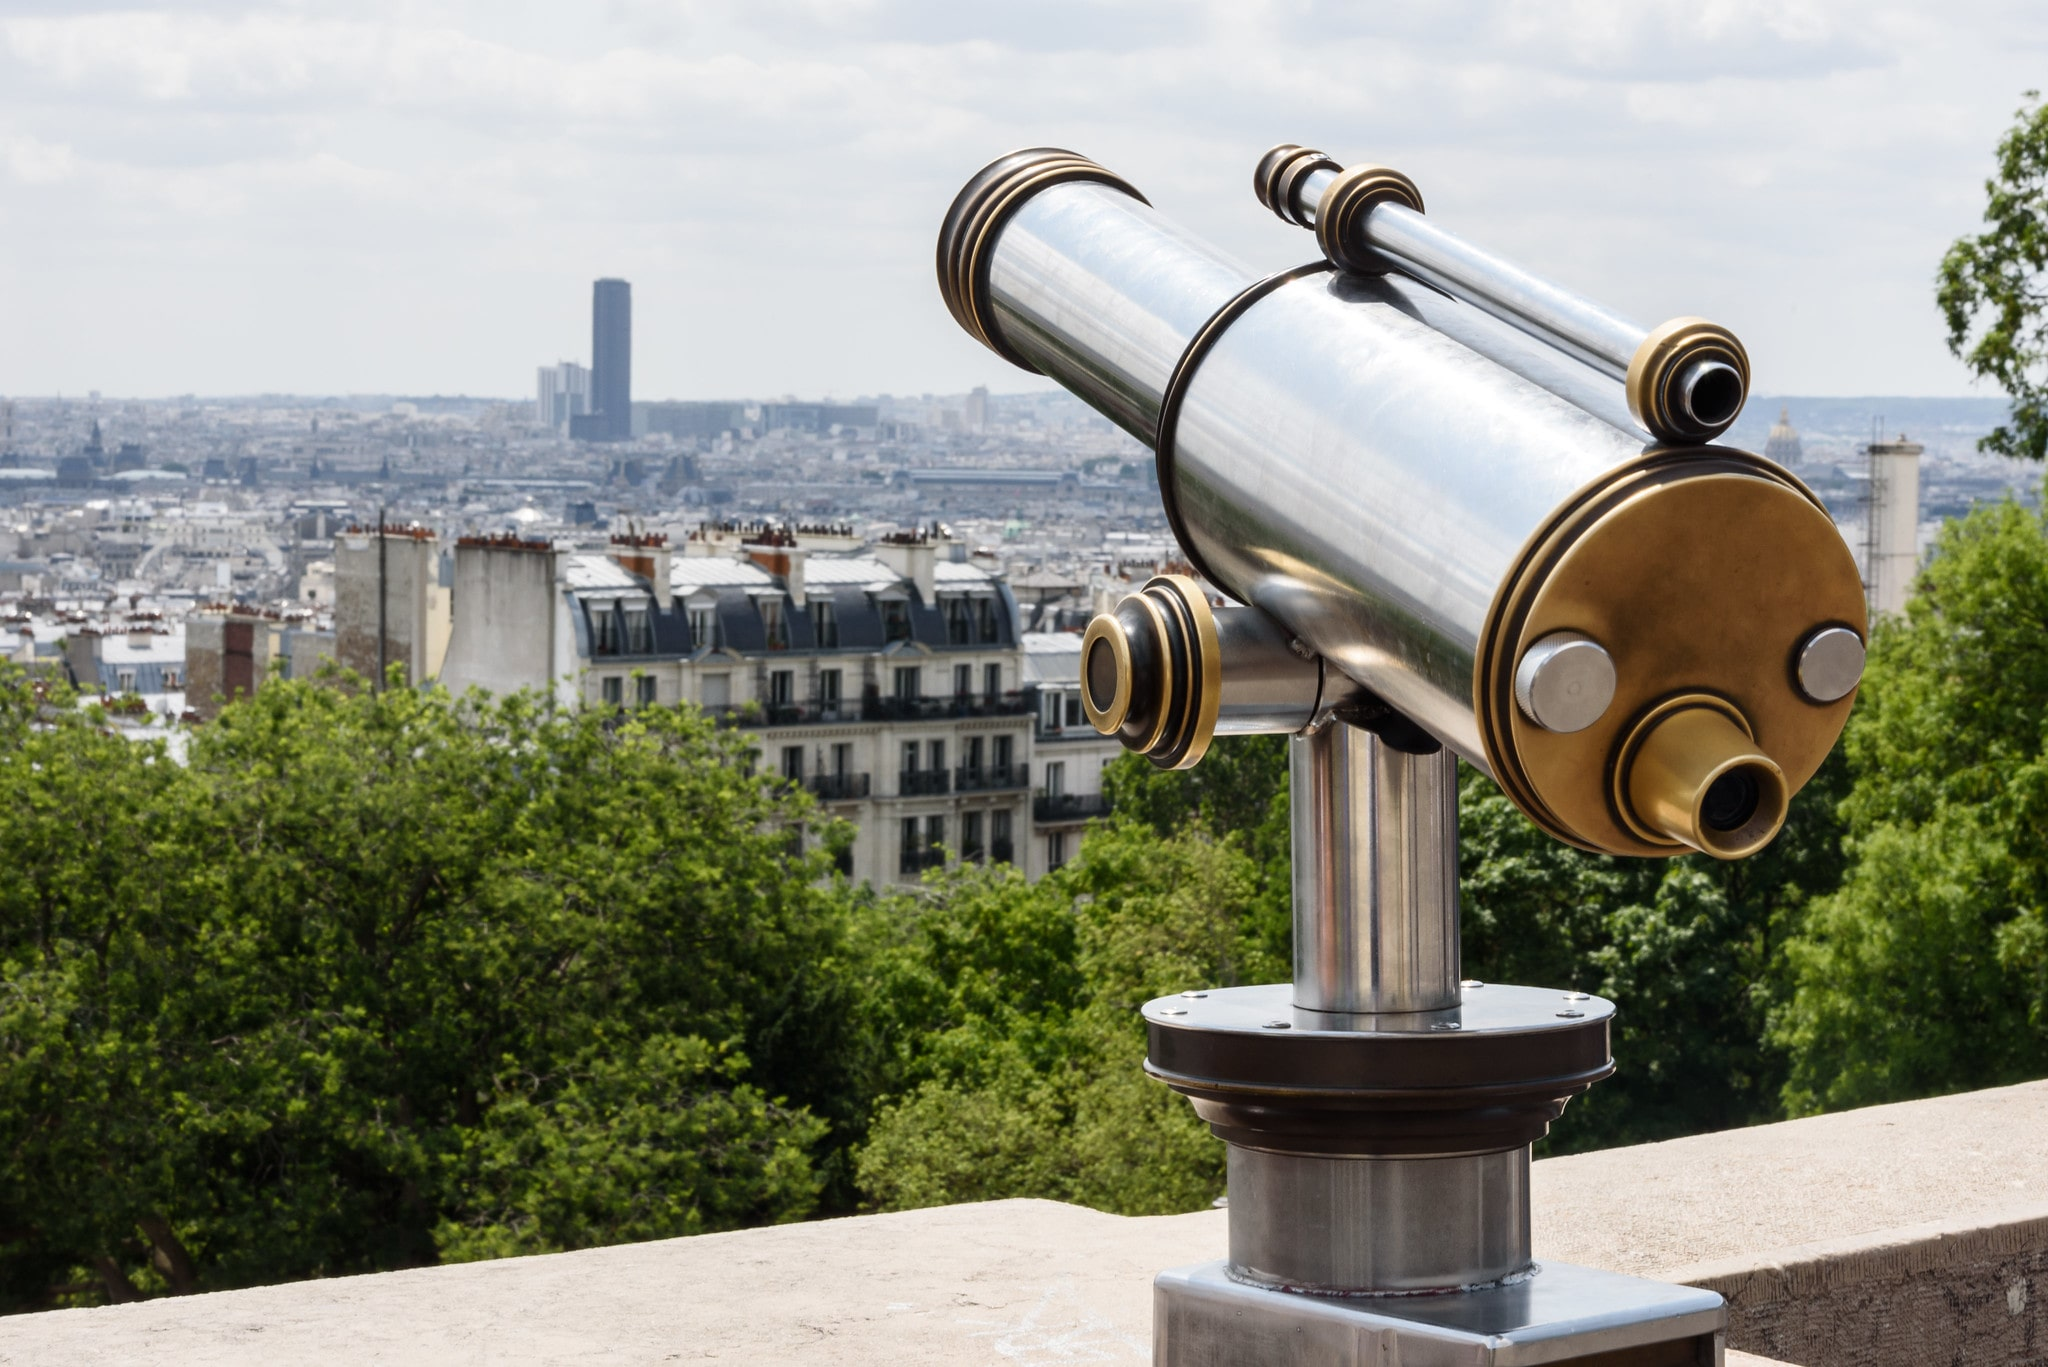 Seeing the City of Lights from above is a fantastic thing to do in France